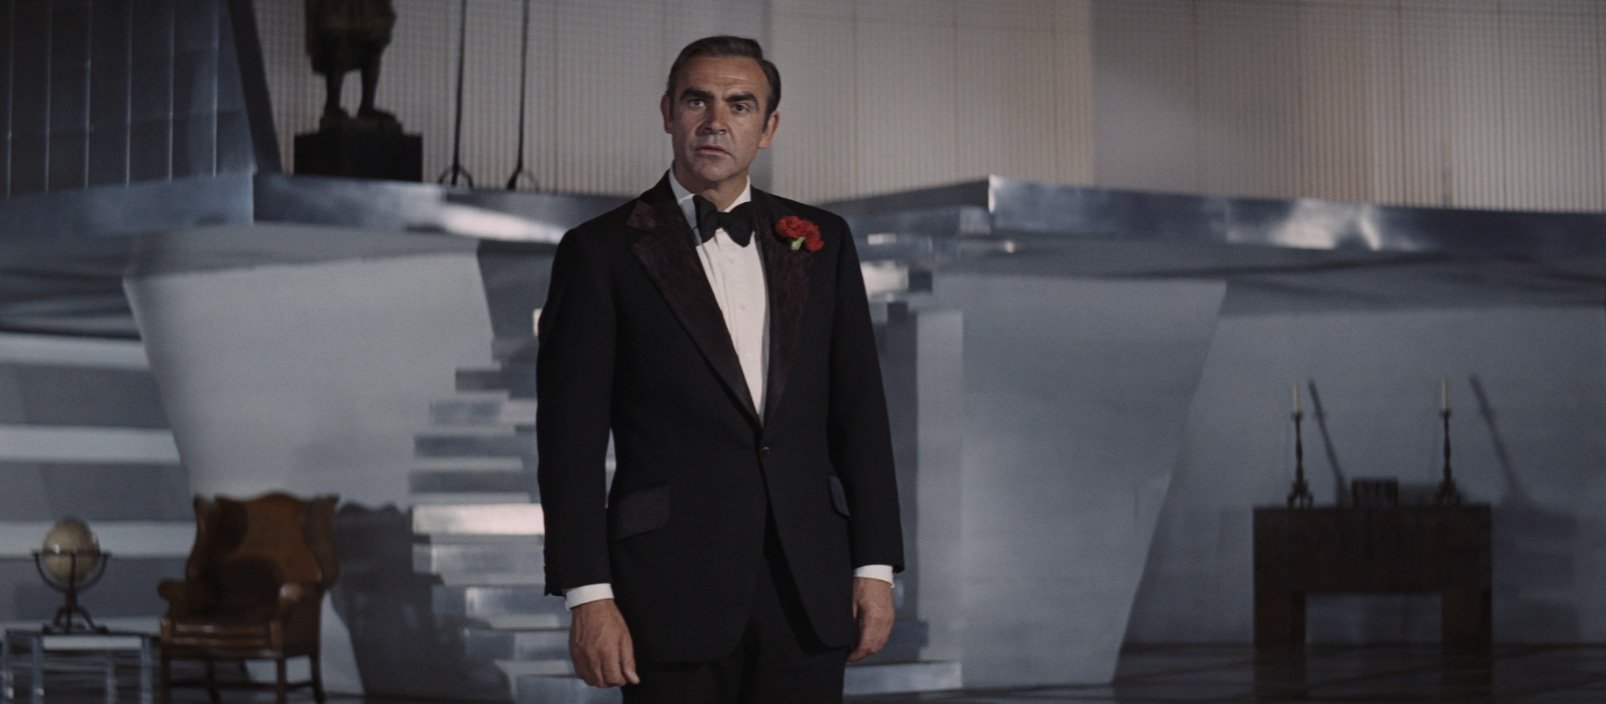 A Flamboyant Black Dinner Suit In Diamonds Are Forever The